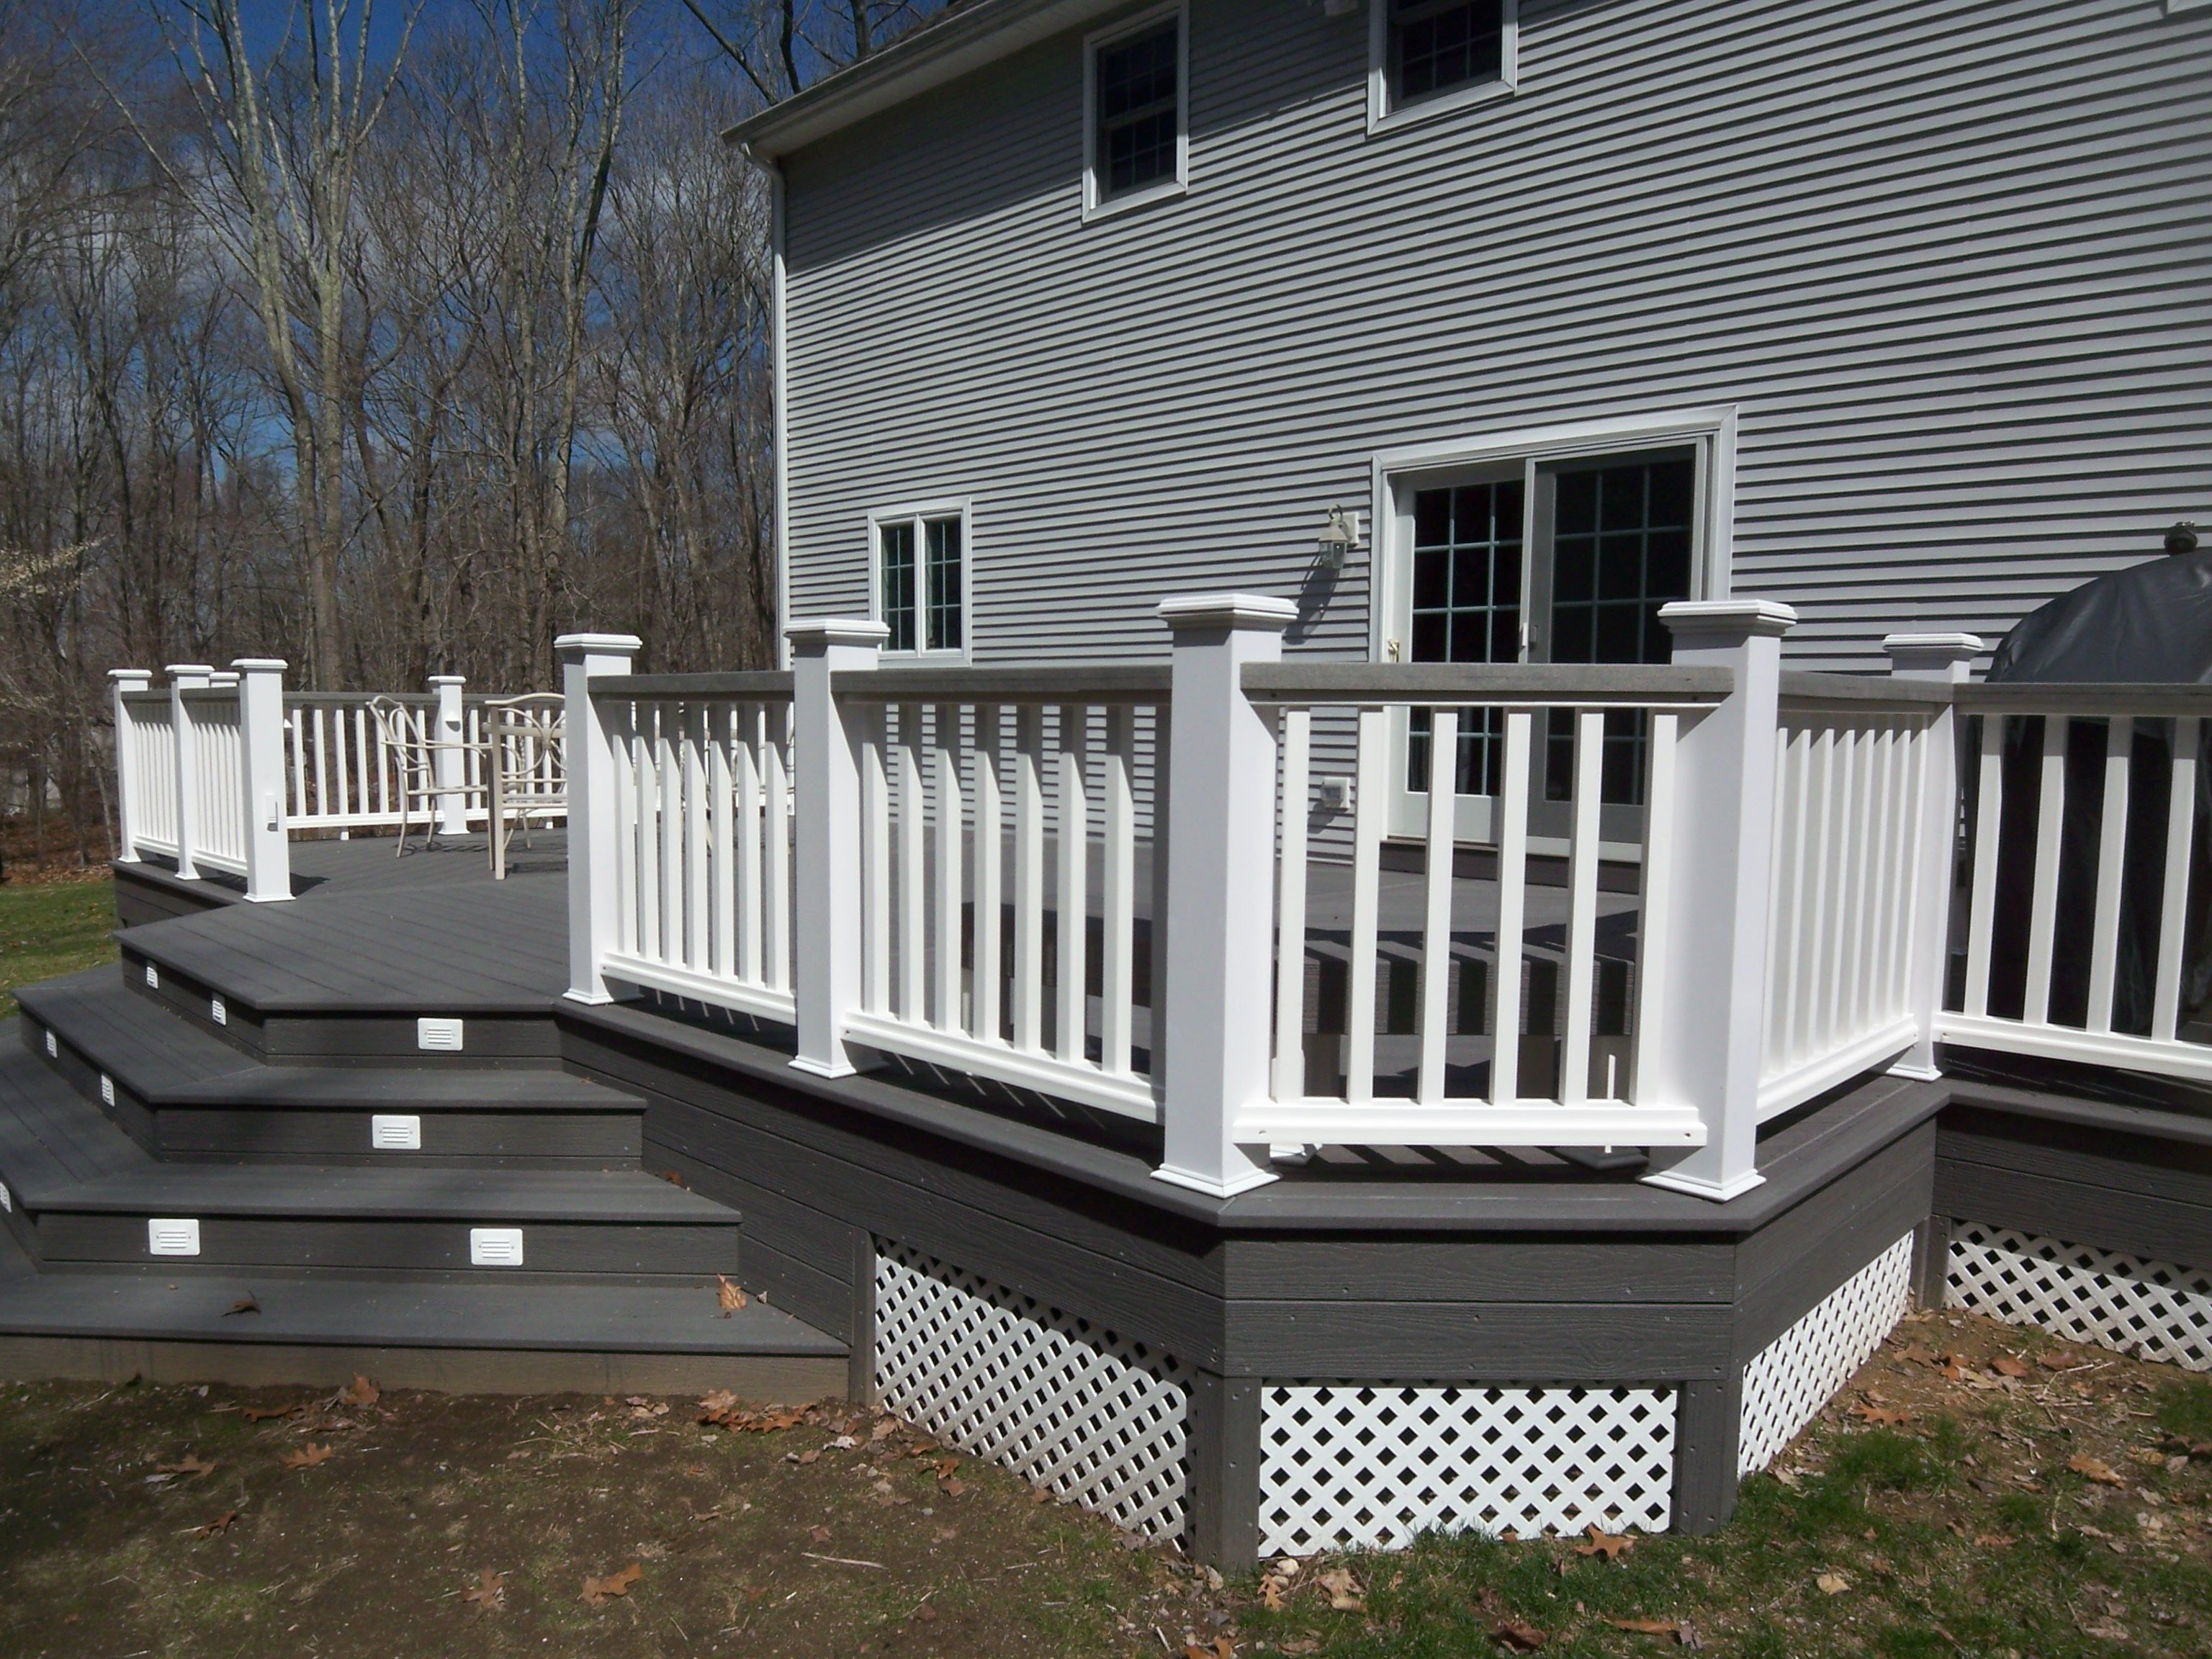 22 Luxury Grey Deck Paint Trends You Ll See In 2020 Home Inspiration And Home Decor Ideas Deck Colors Grey Deck Paint Patio Deck Designs